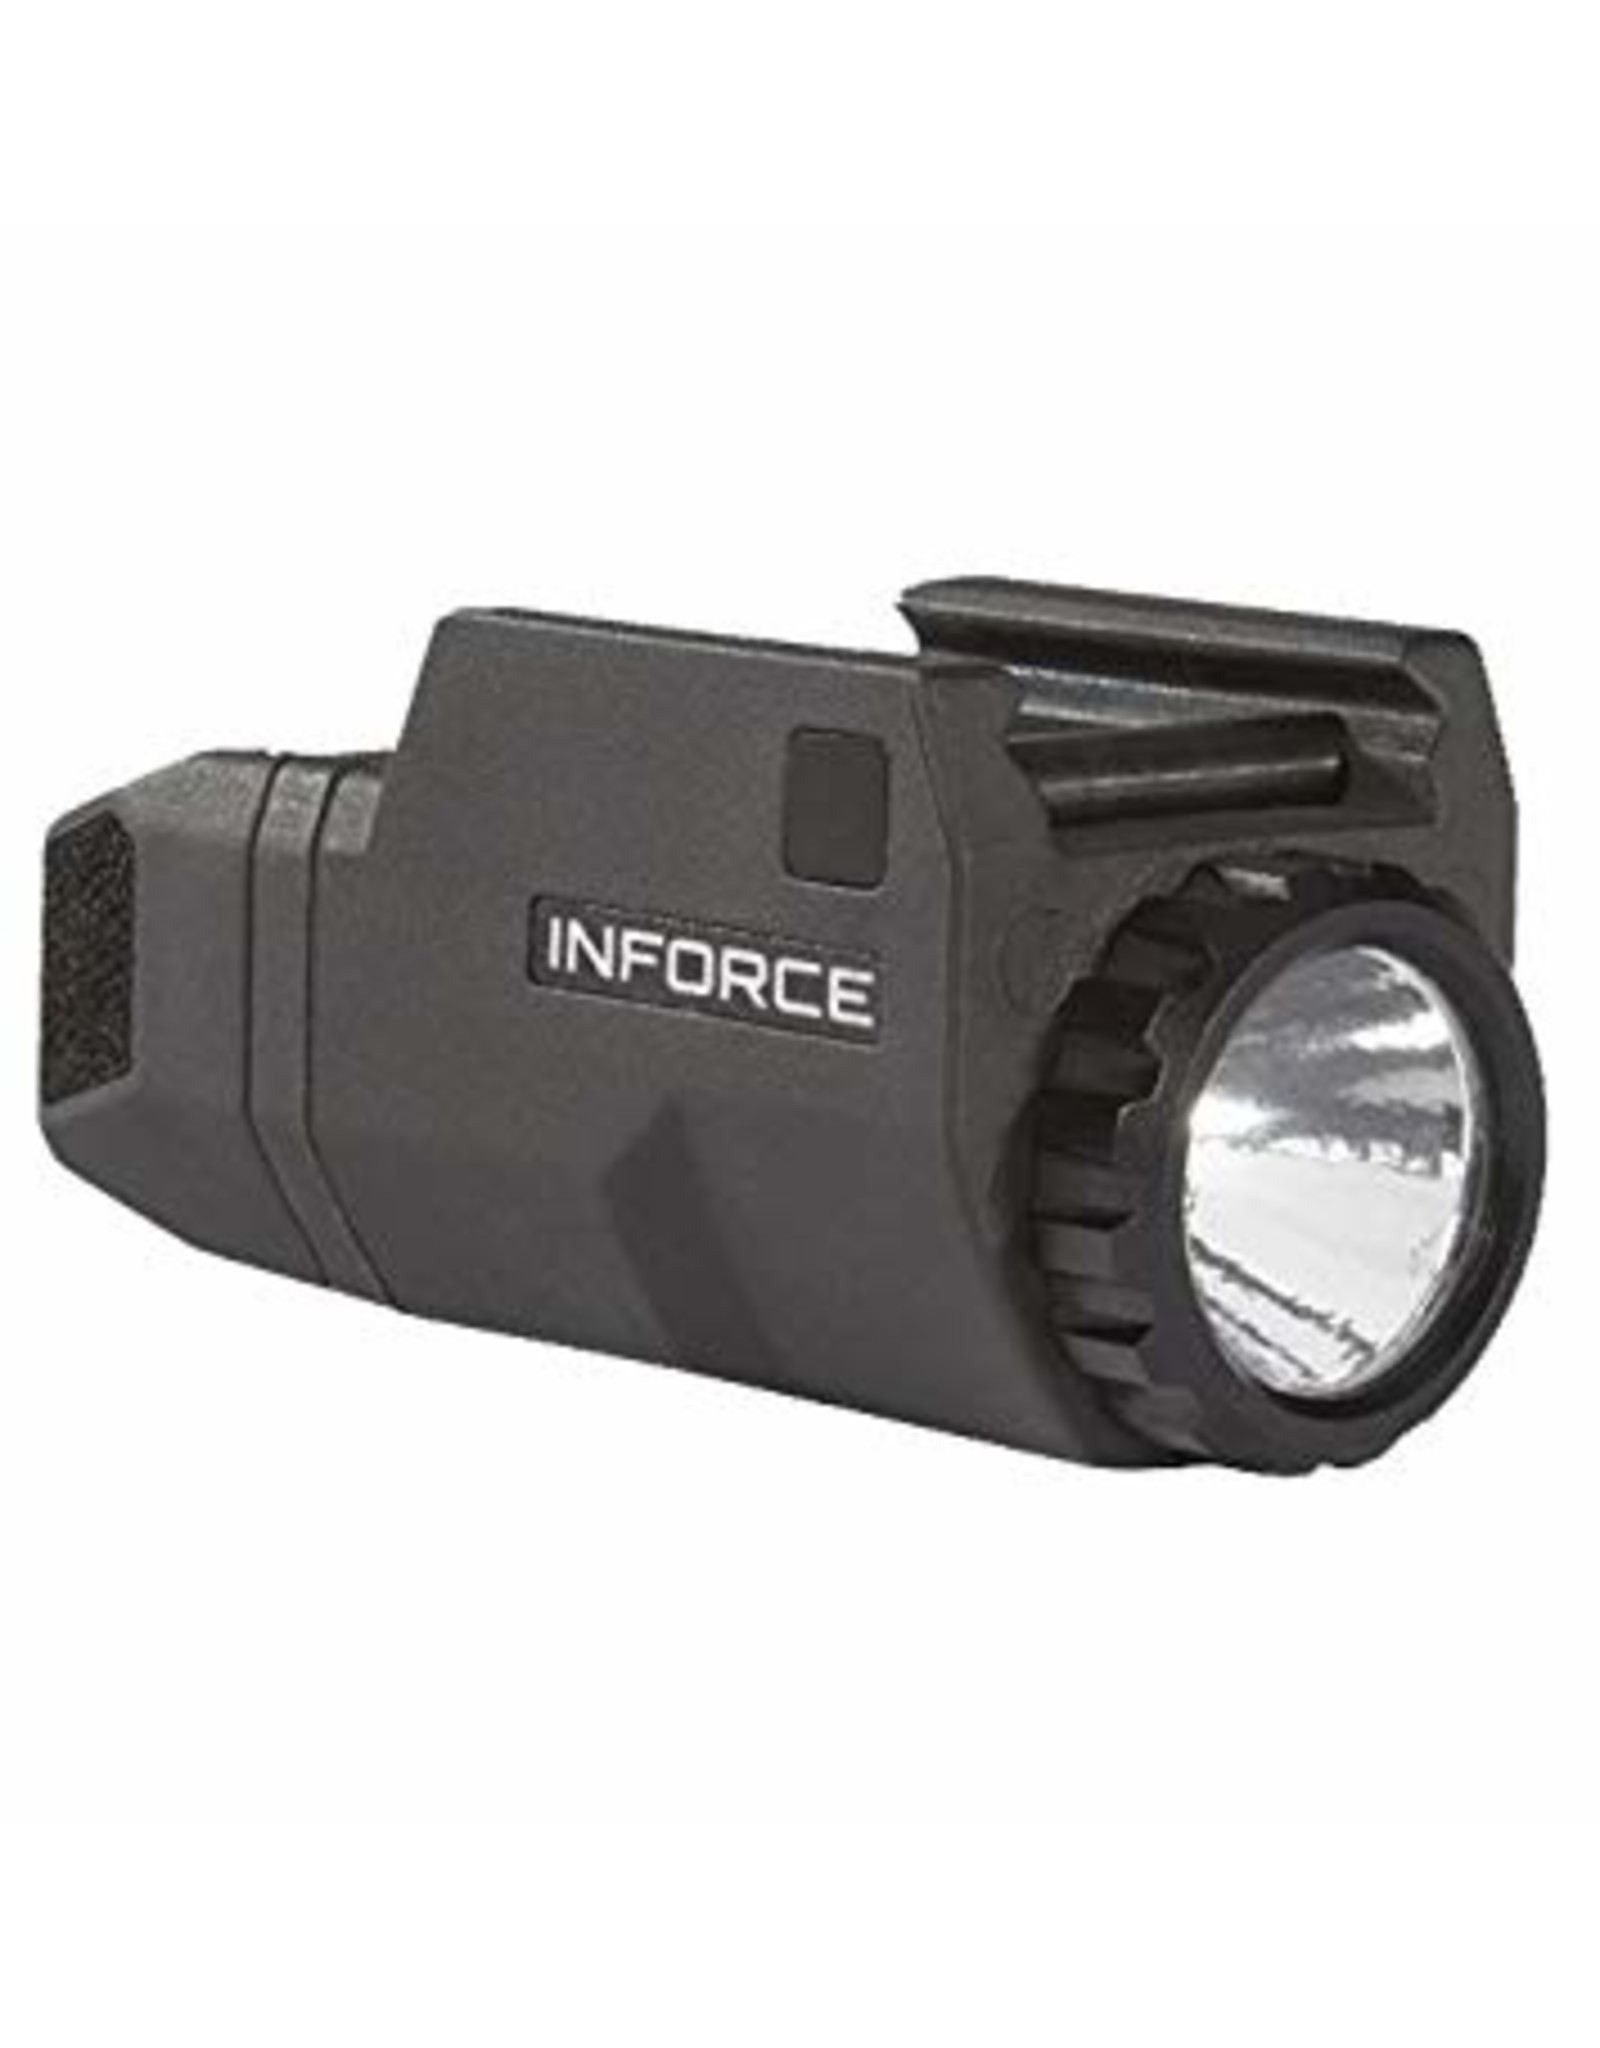 INFORCE INFORCE APLC GEN3